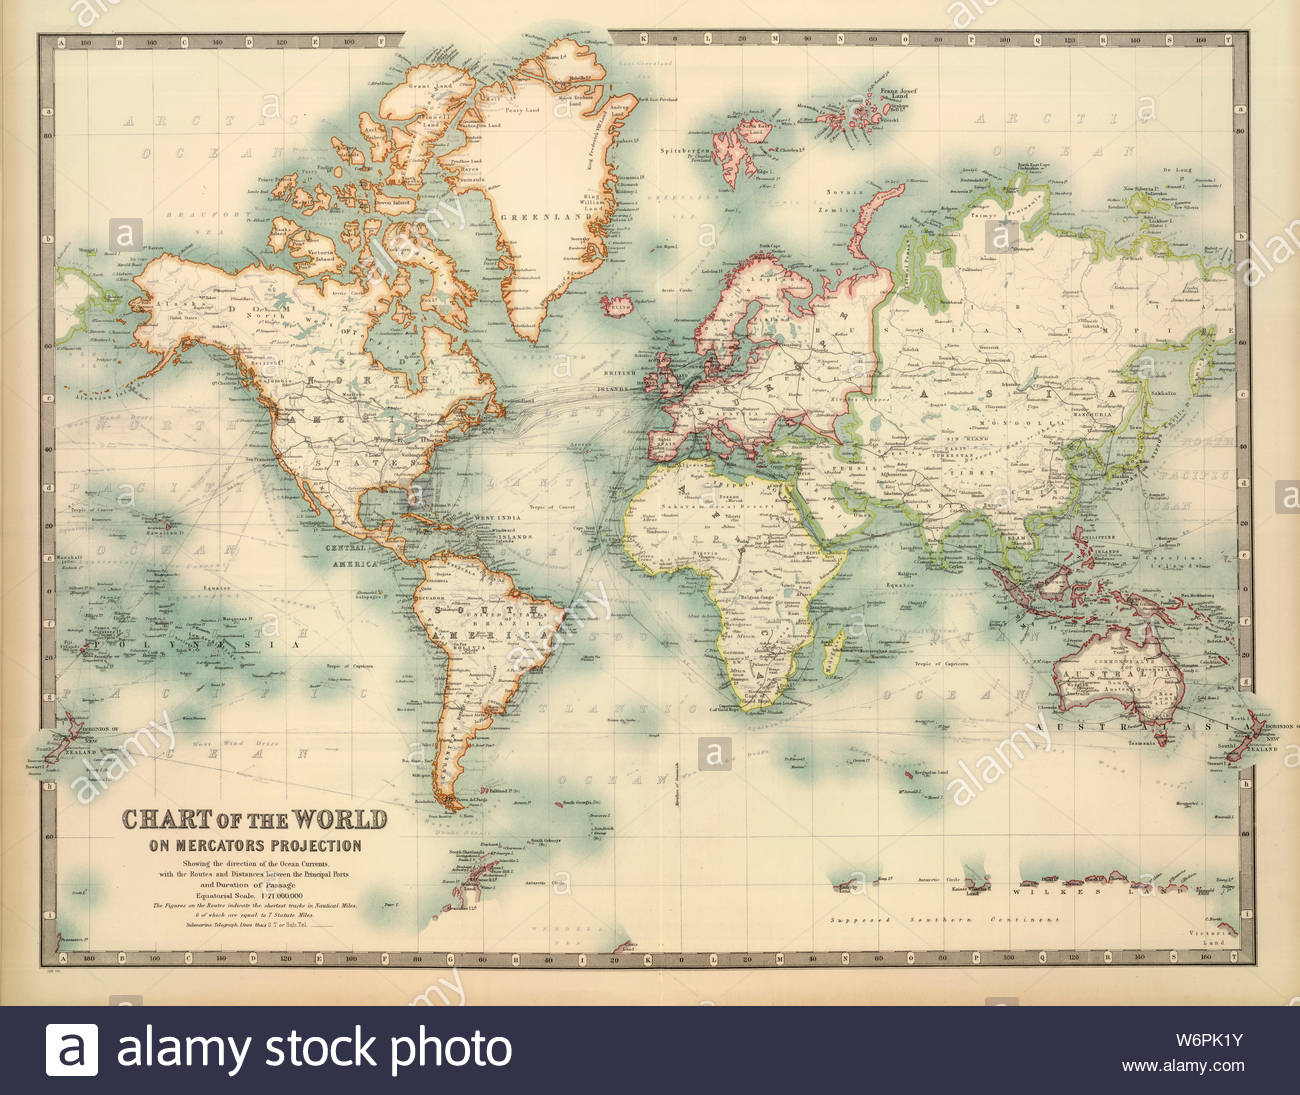 Printable Map Europe Stock Photos & Printable Map Europe ...